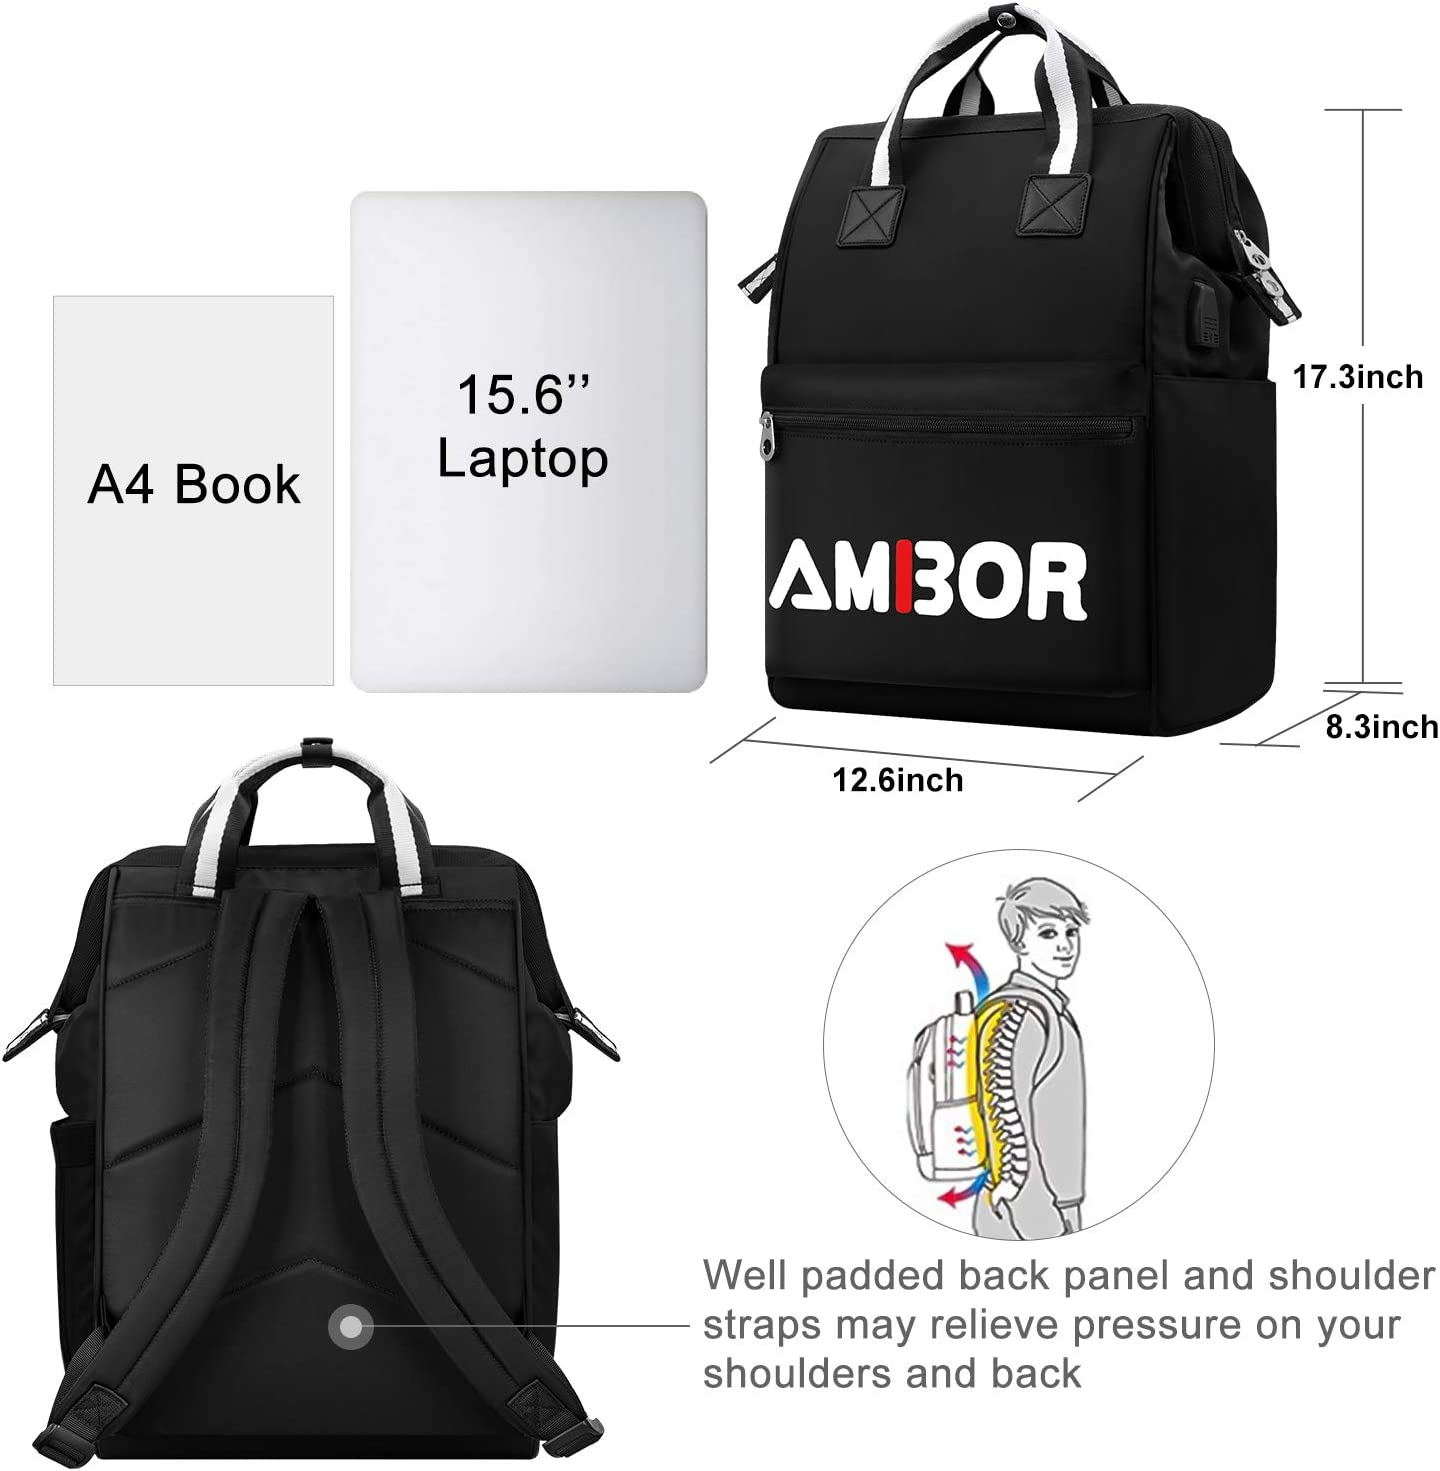 15.6 Inch High Capacity Computer Backpack College School Casual Daypack Laptop Bag Travel Laptop Backpack Water Resistant Business Travel Laptop Backpack with USB Charging Port for Women Men